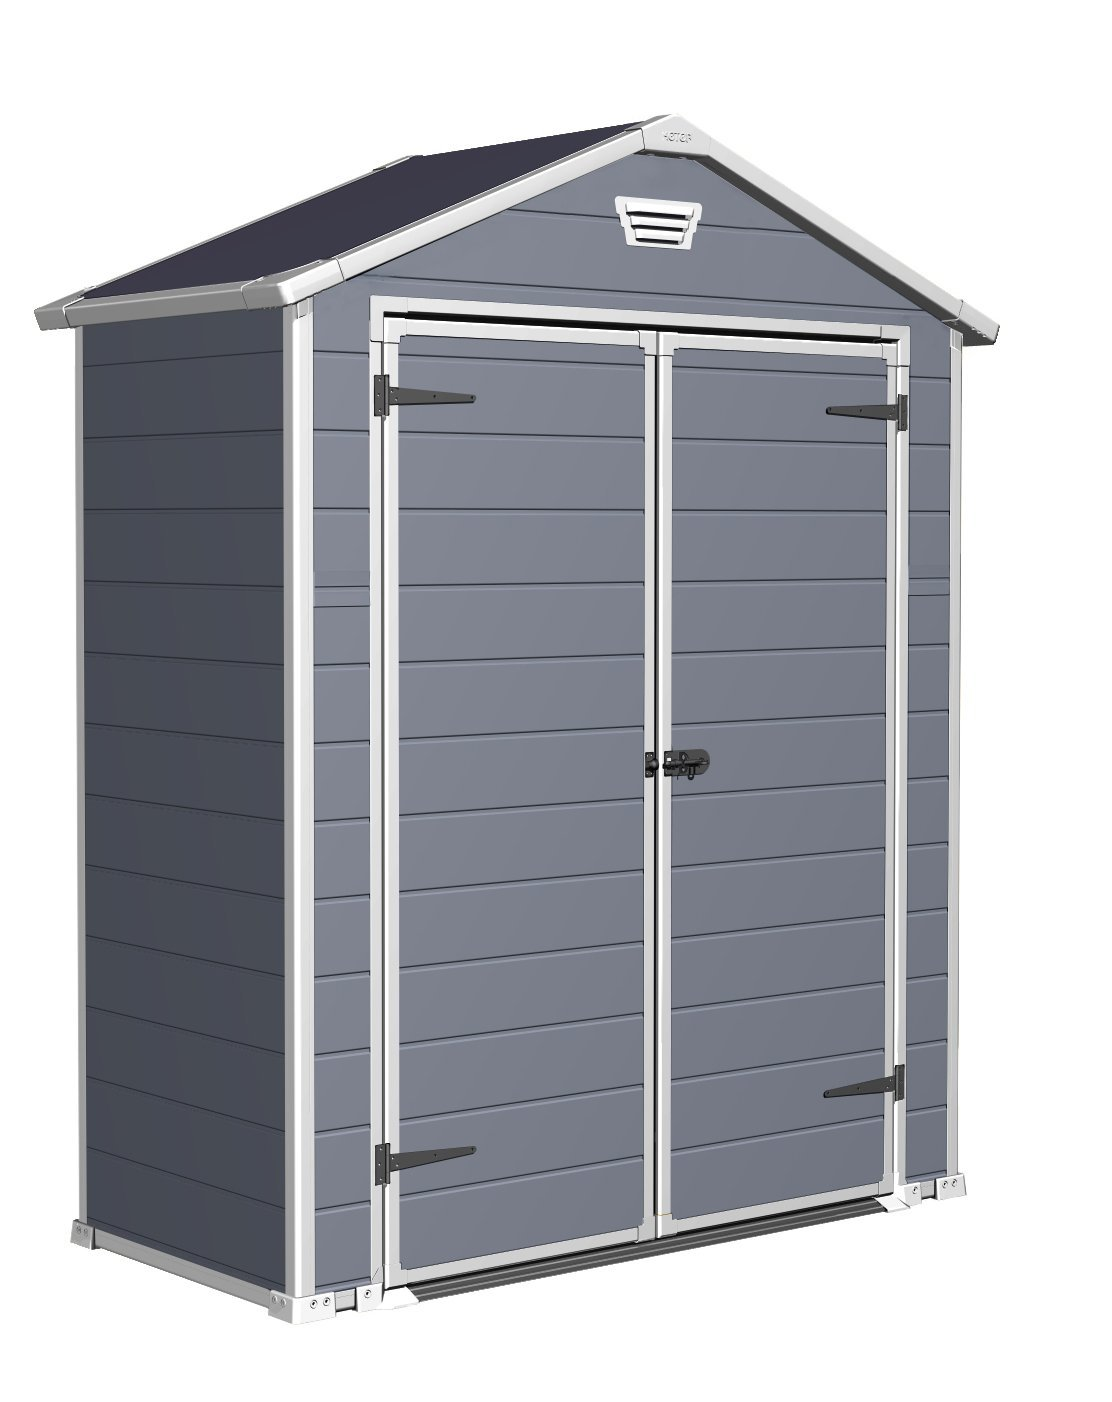 Rubbermaid Storage Shed Hooks | Rubbermaid Sheds | Rubbermaid Outdoor  Storage Cabinet